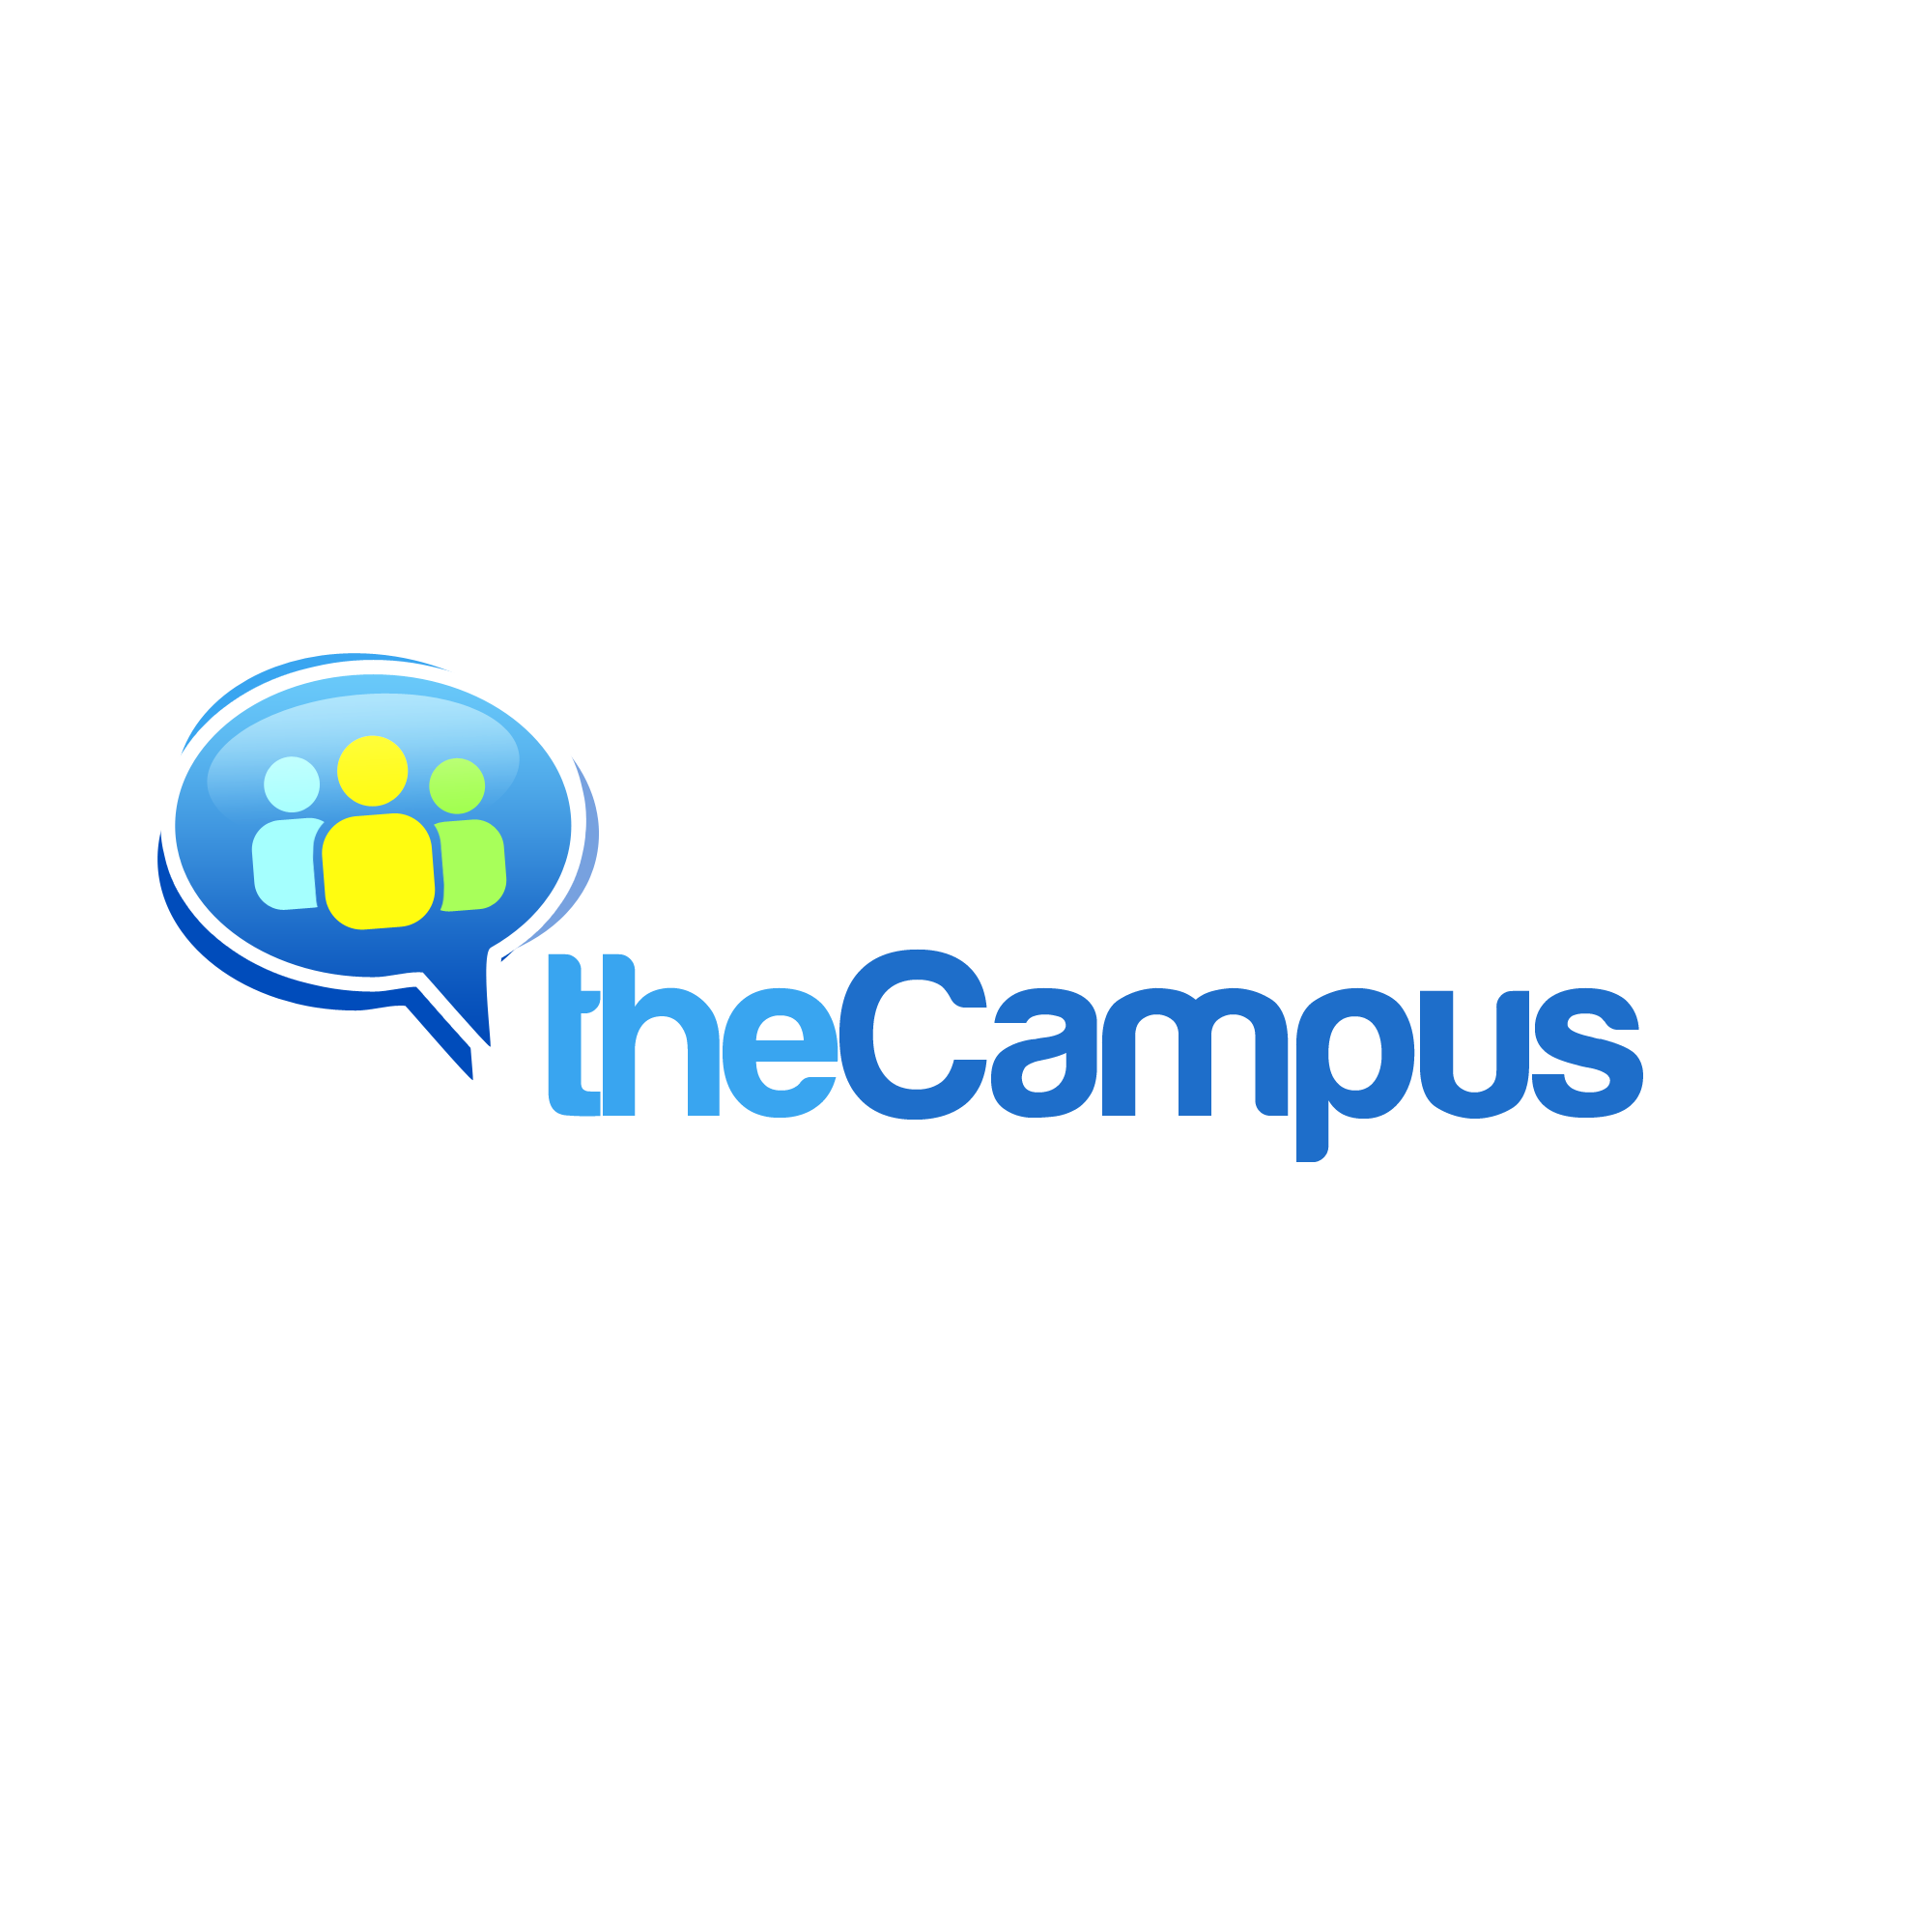 Logo Design by Kenneth Joel - Entry No. 43 in the Logo Design Contest theCampus Logo Design.